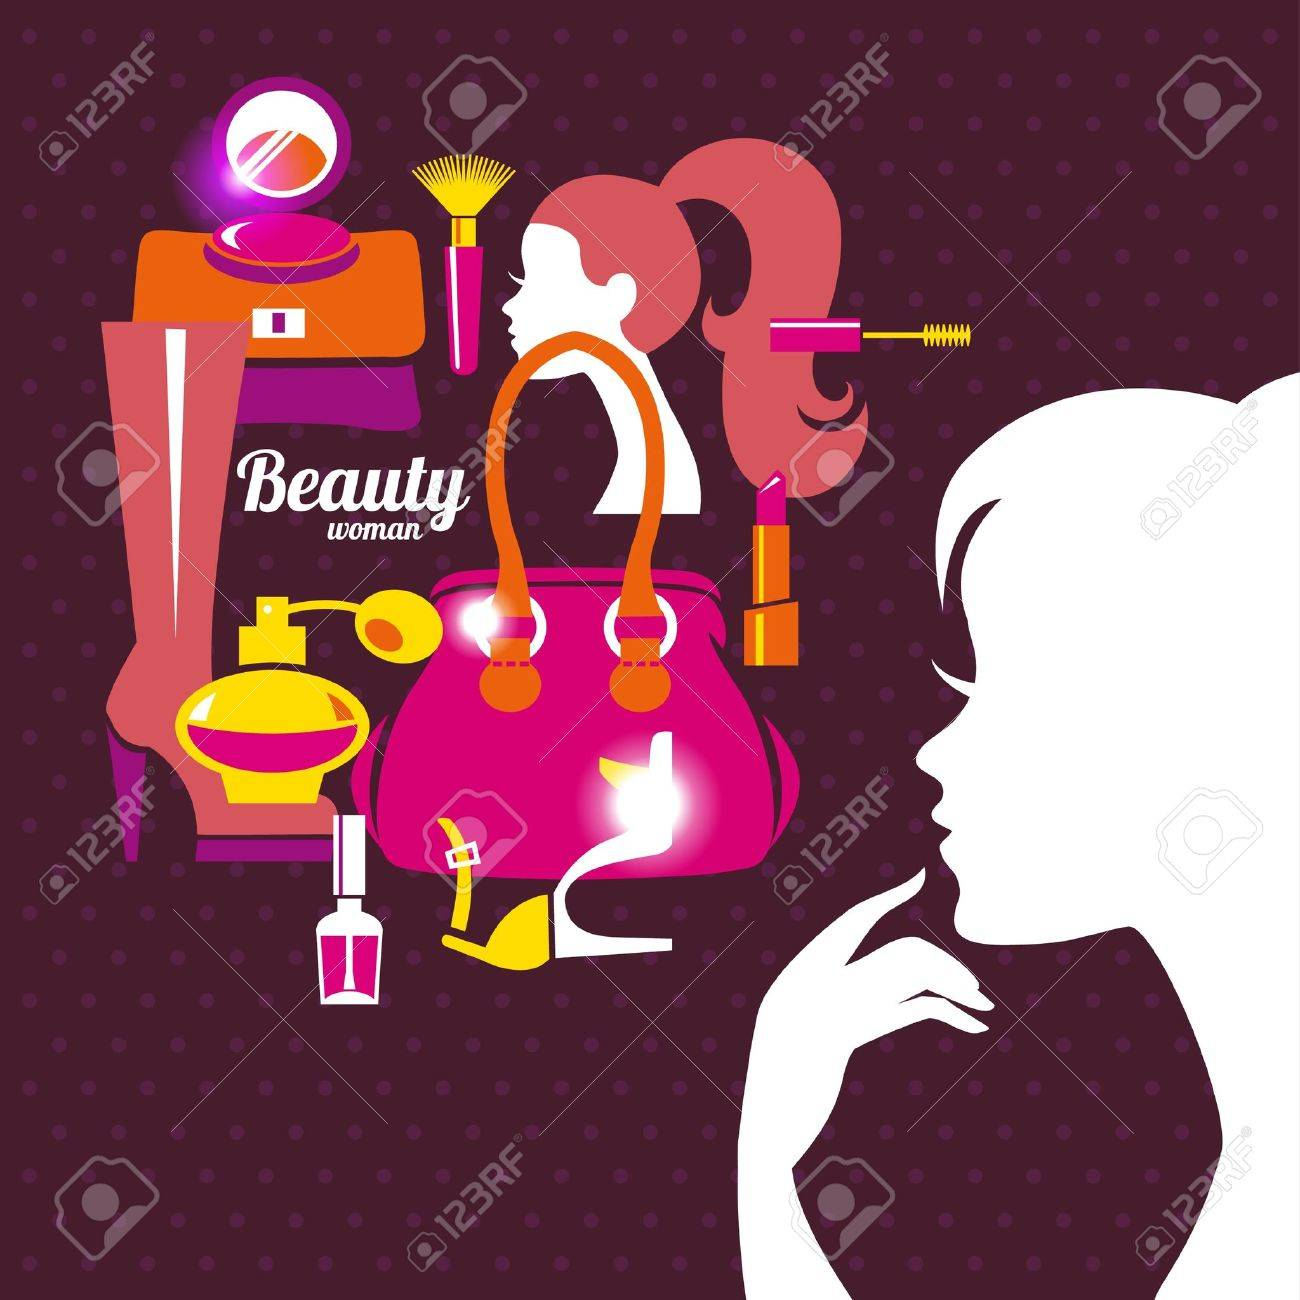 Beautiful woman silhouette with fashion icons. Shopping girl. Elegant stylish design Stock Vector - 18813677